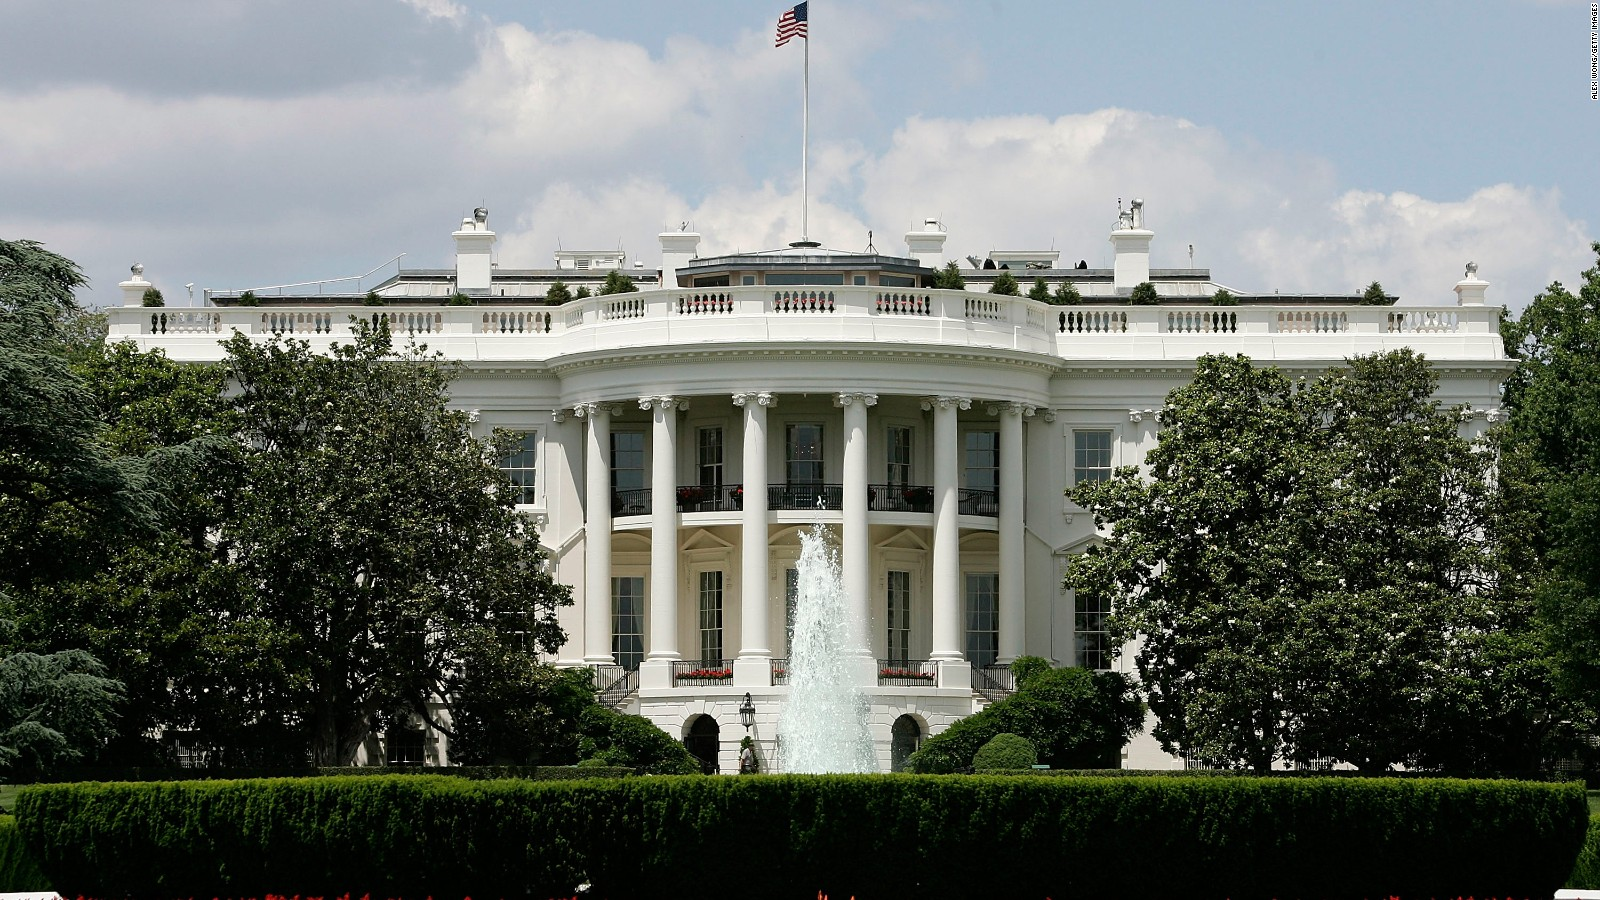 DARE: White House Imposes New Rules on Reporters' Credentials, Raising Concerns about Access